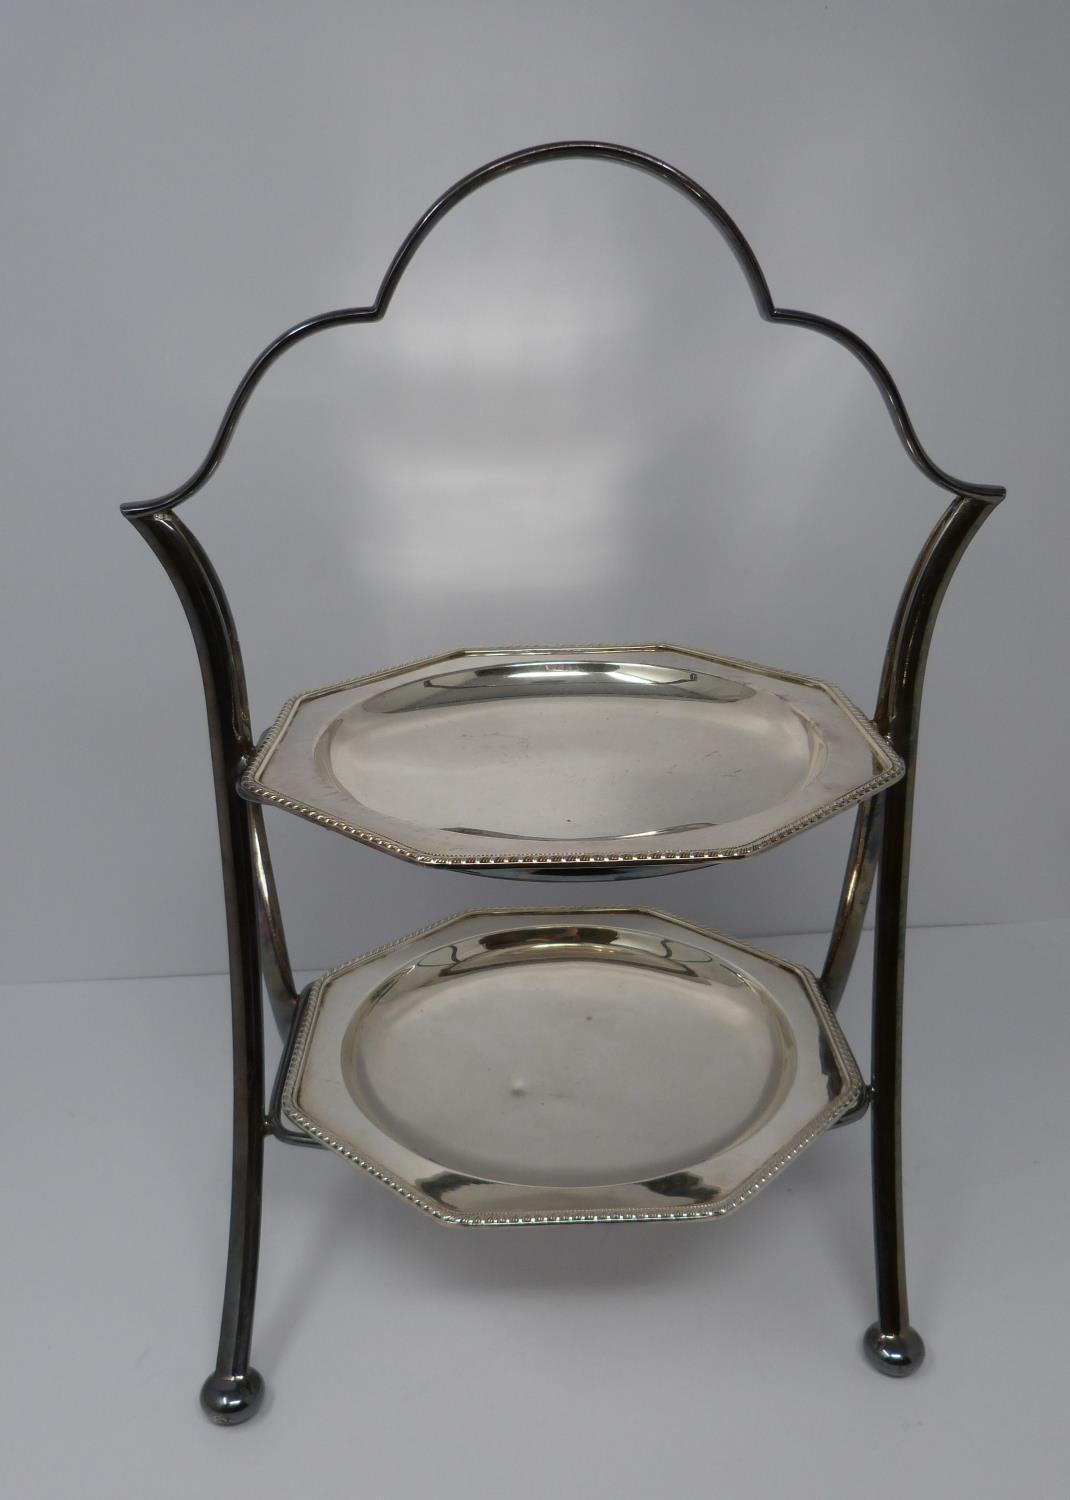 A silver plated cake stand, handled basket and two tankards, basket stamped EPNS, 13694, flower form - Image 3 of 12